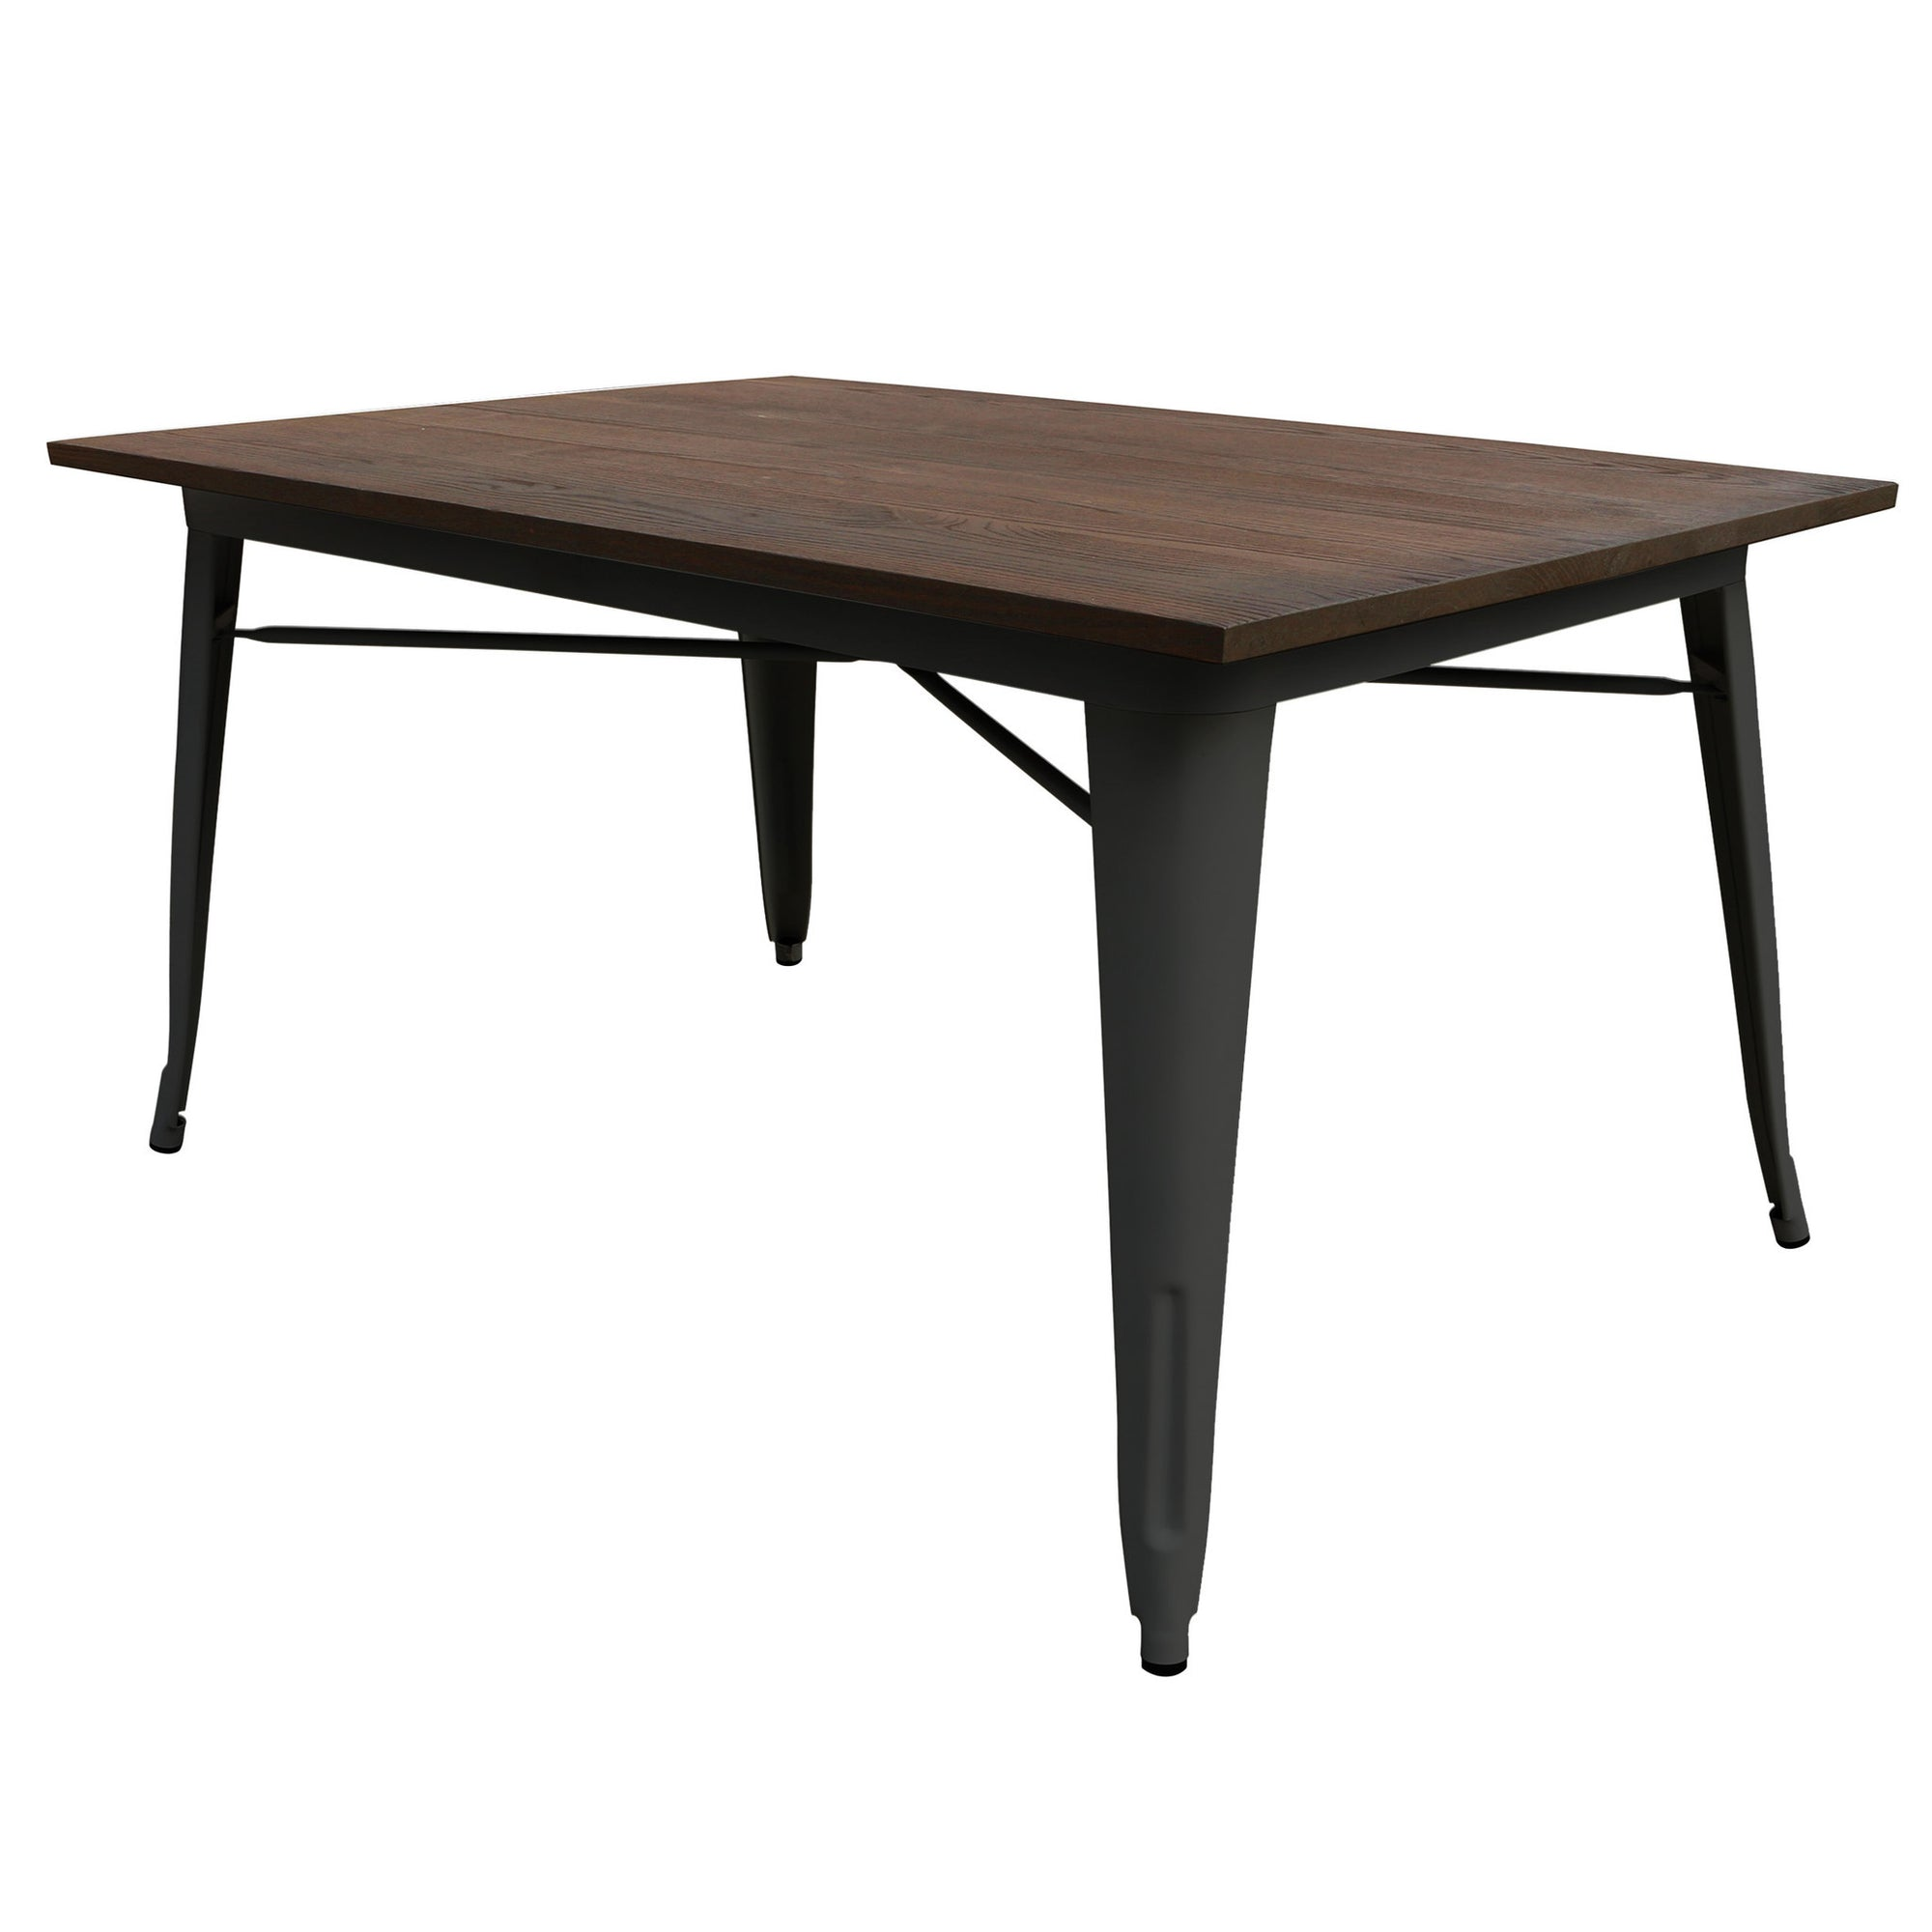 Dinning Table - Industrial  Table With Solid Wood Top 120 Cm BPTT02B+W